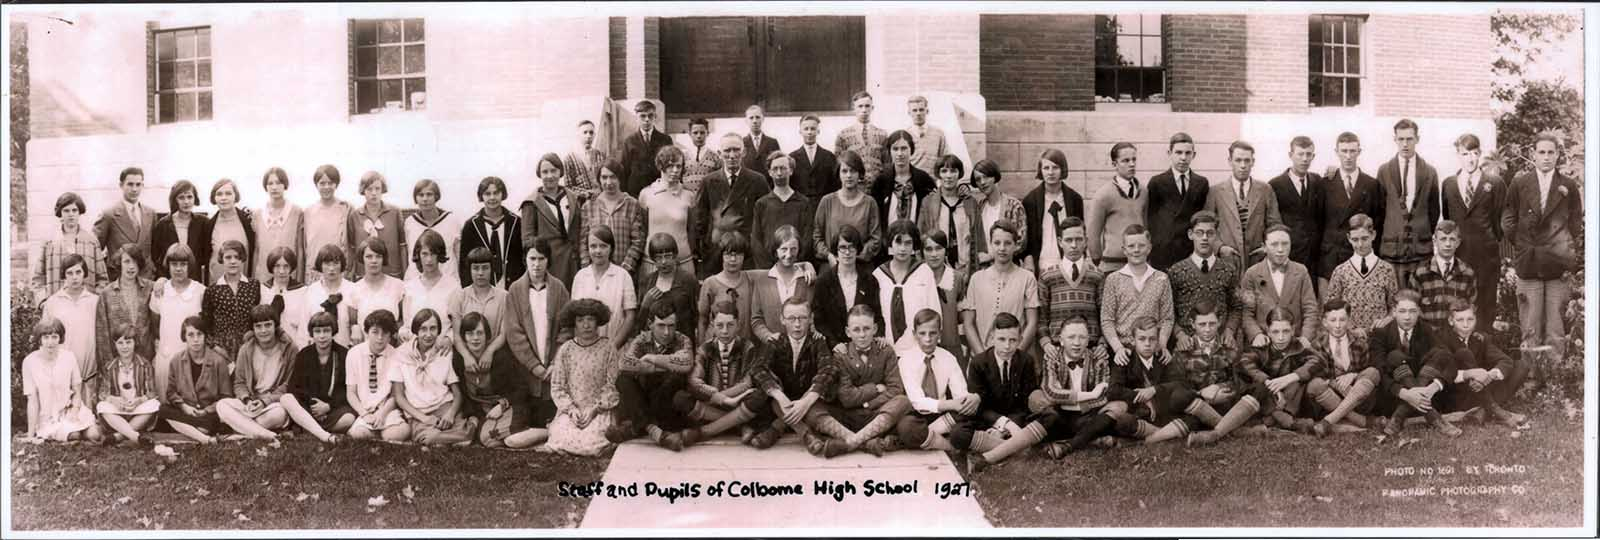 Staff and pupils of Colborne High School 1927